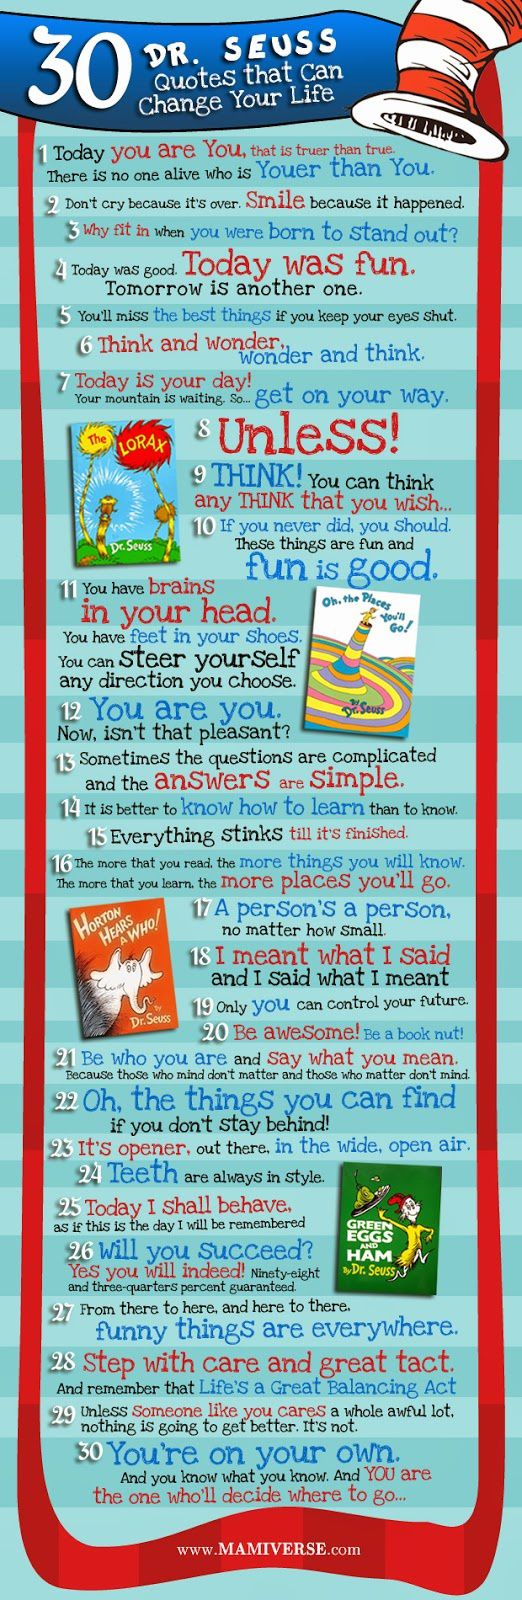 DrSeuss-citations.jpg